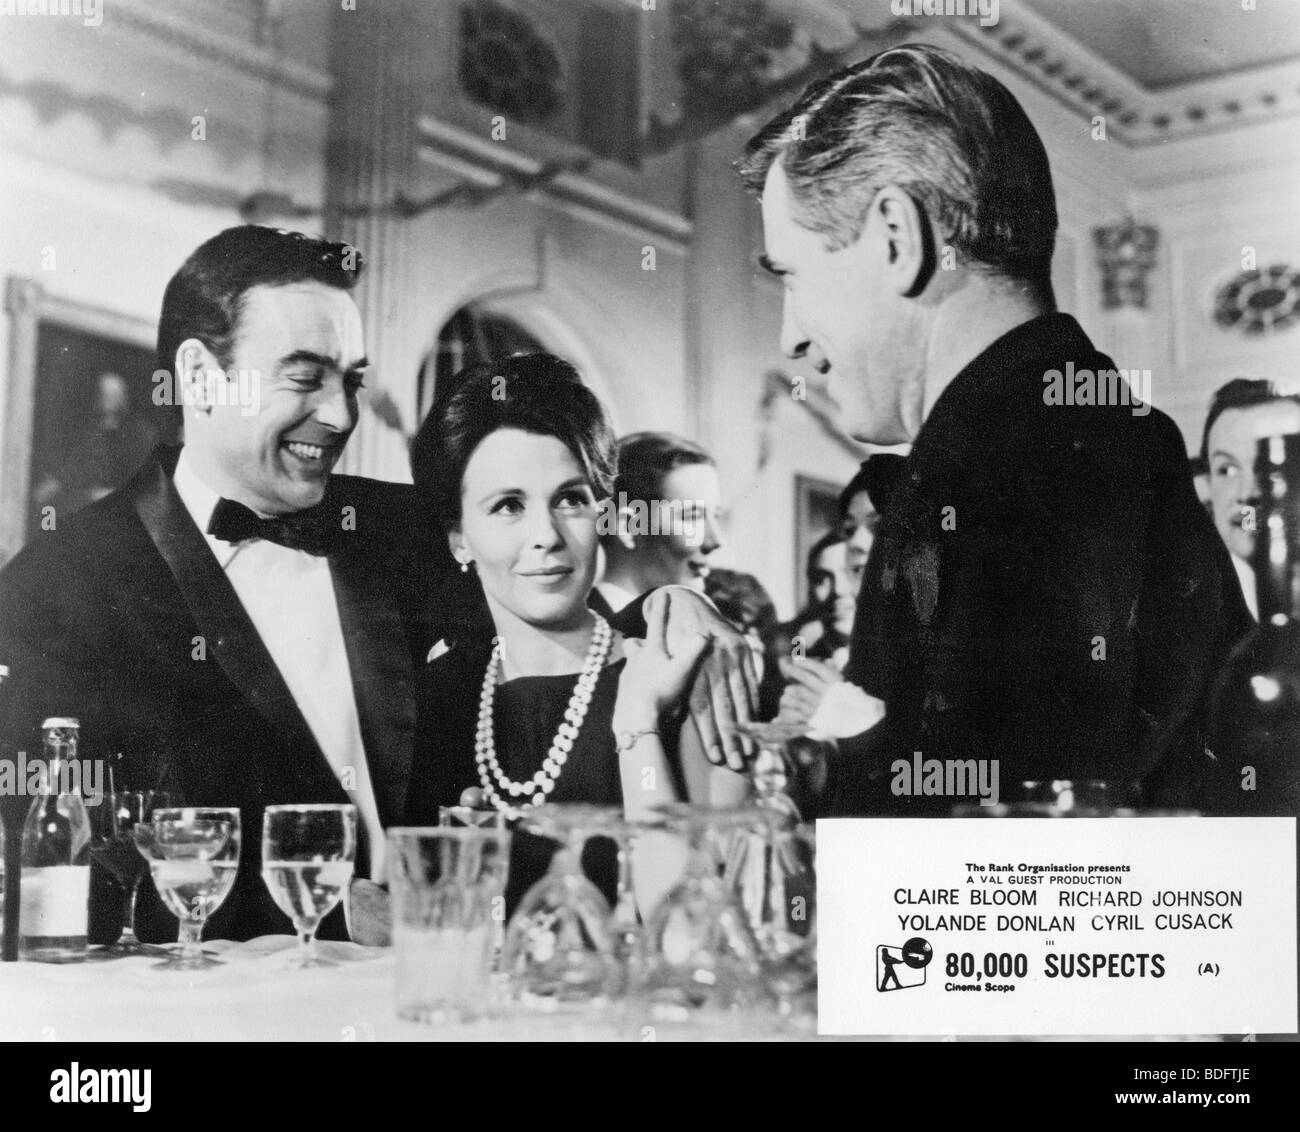 80,000 SUSPECTS  - 1963 Rank film with Claire Bloom and Richard Johnson at left - Stock Image